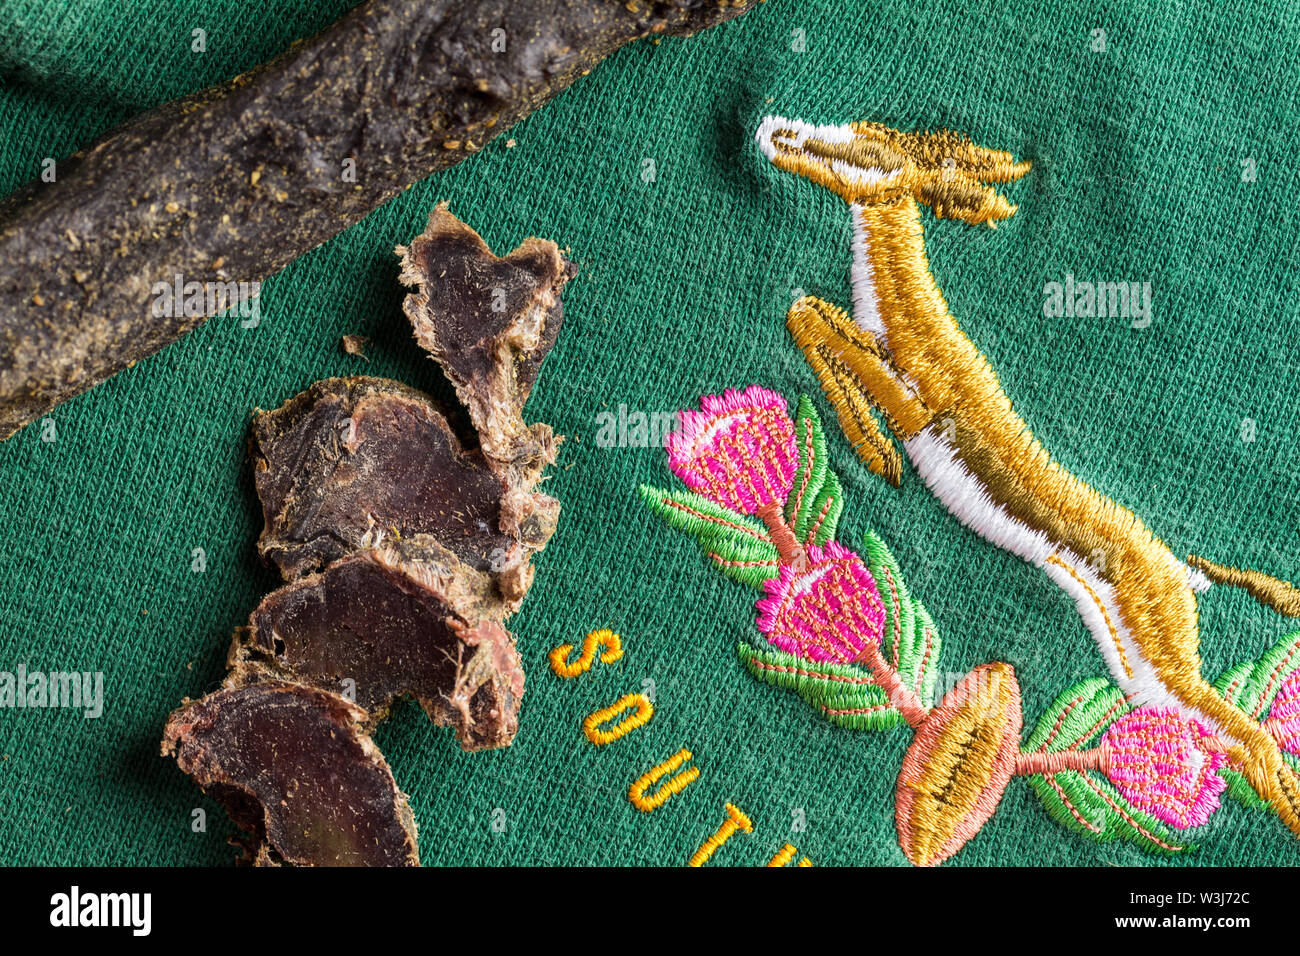 QUEENSTOWN, SOUTH AFRICA - 16 JULY 2019 -South African Springbok rugby jersey circa 1995 World Cup with slices of venison biltong, typical South Afric - Stock Image